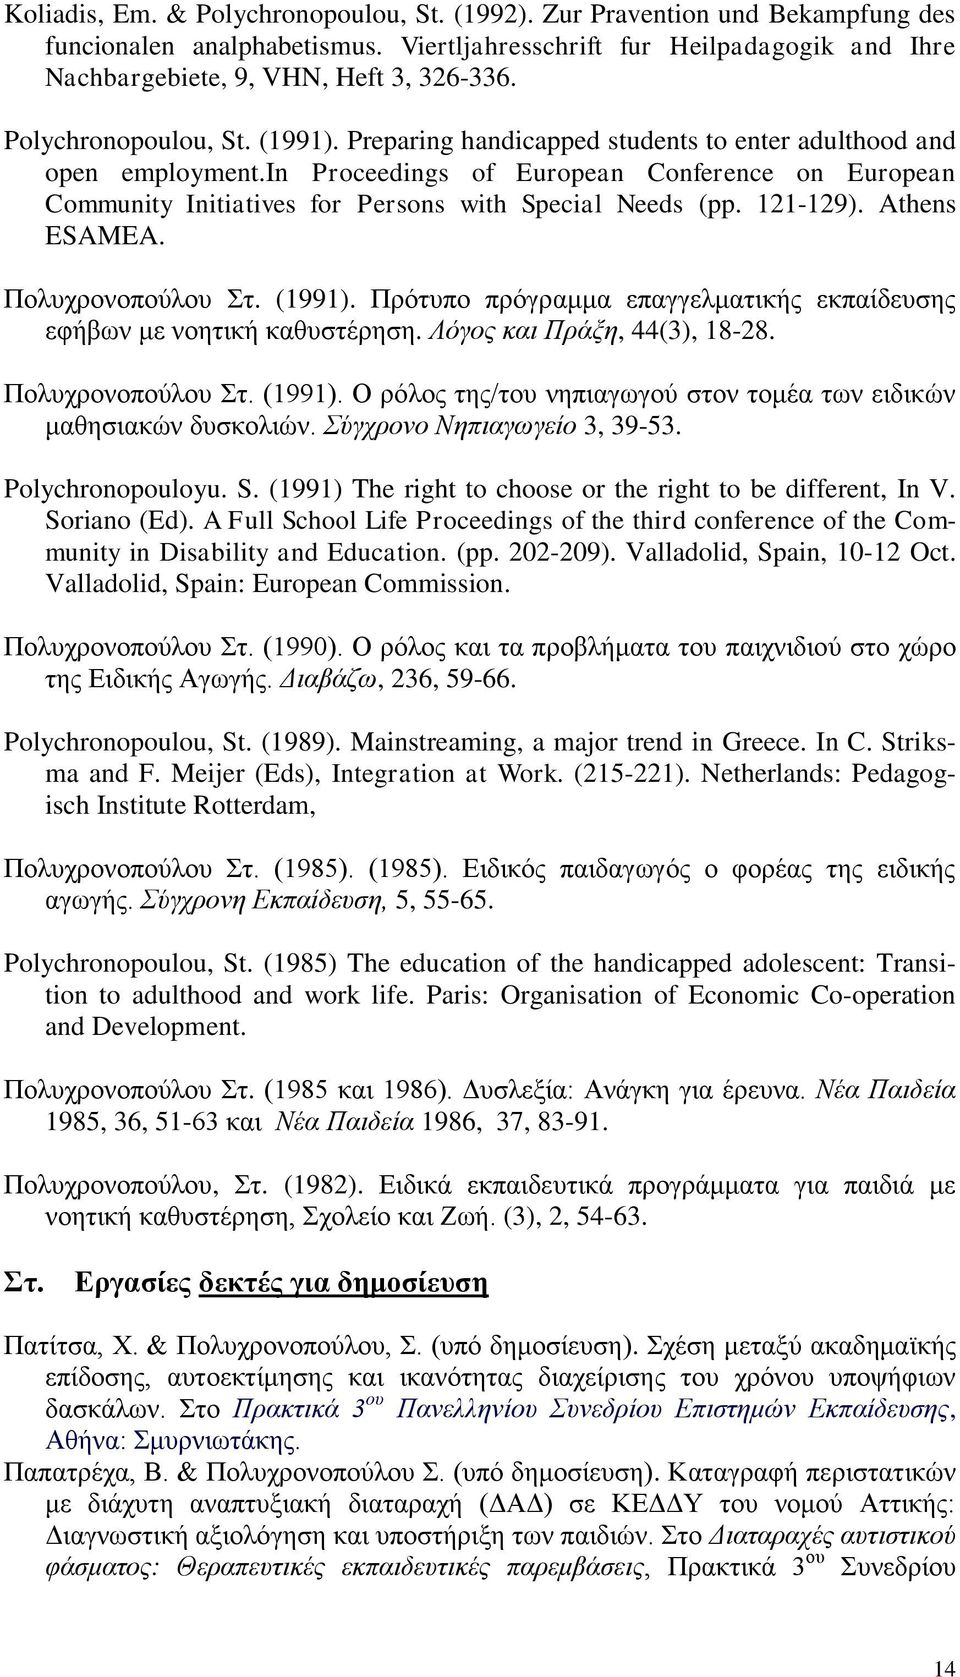 in Proceedings of European Conference on European Community Initiatives for Persons with Special Needs (pp. 121-129). Athens ESAMEA. Πολυχρονοπούλου Στ. (1991).